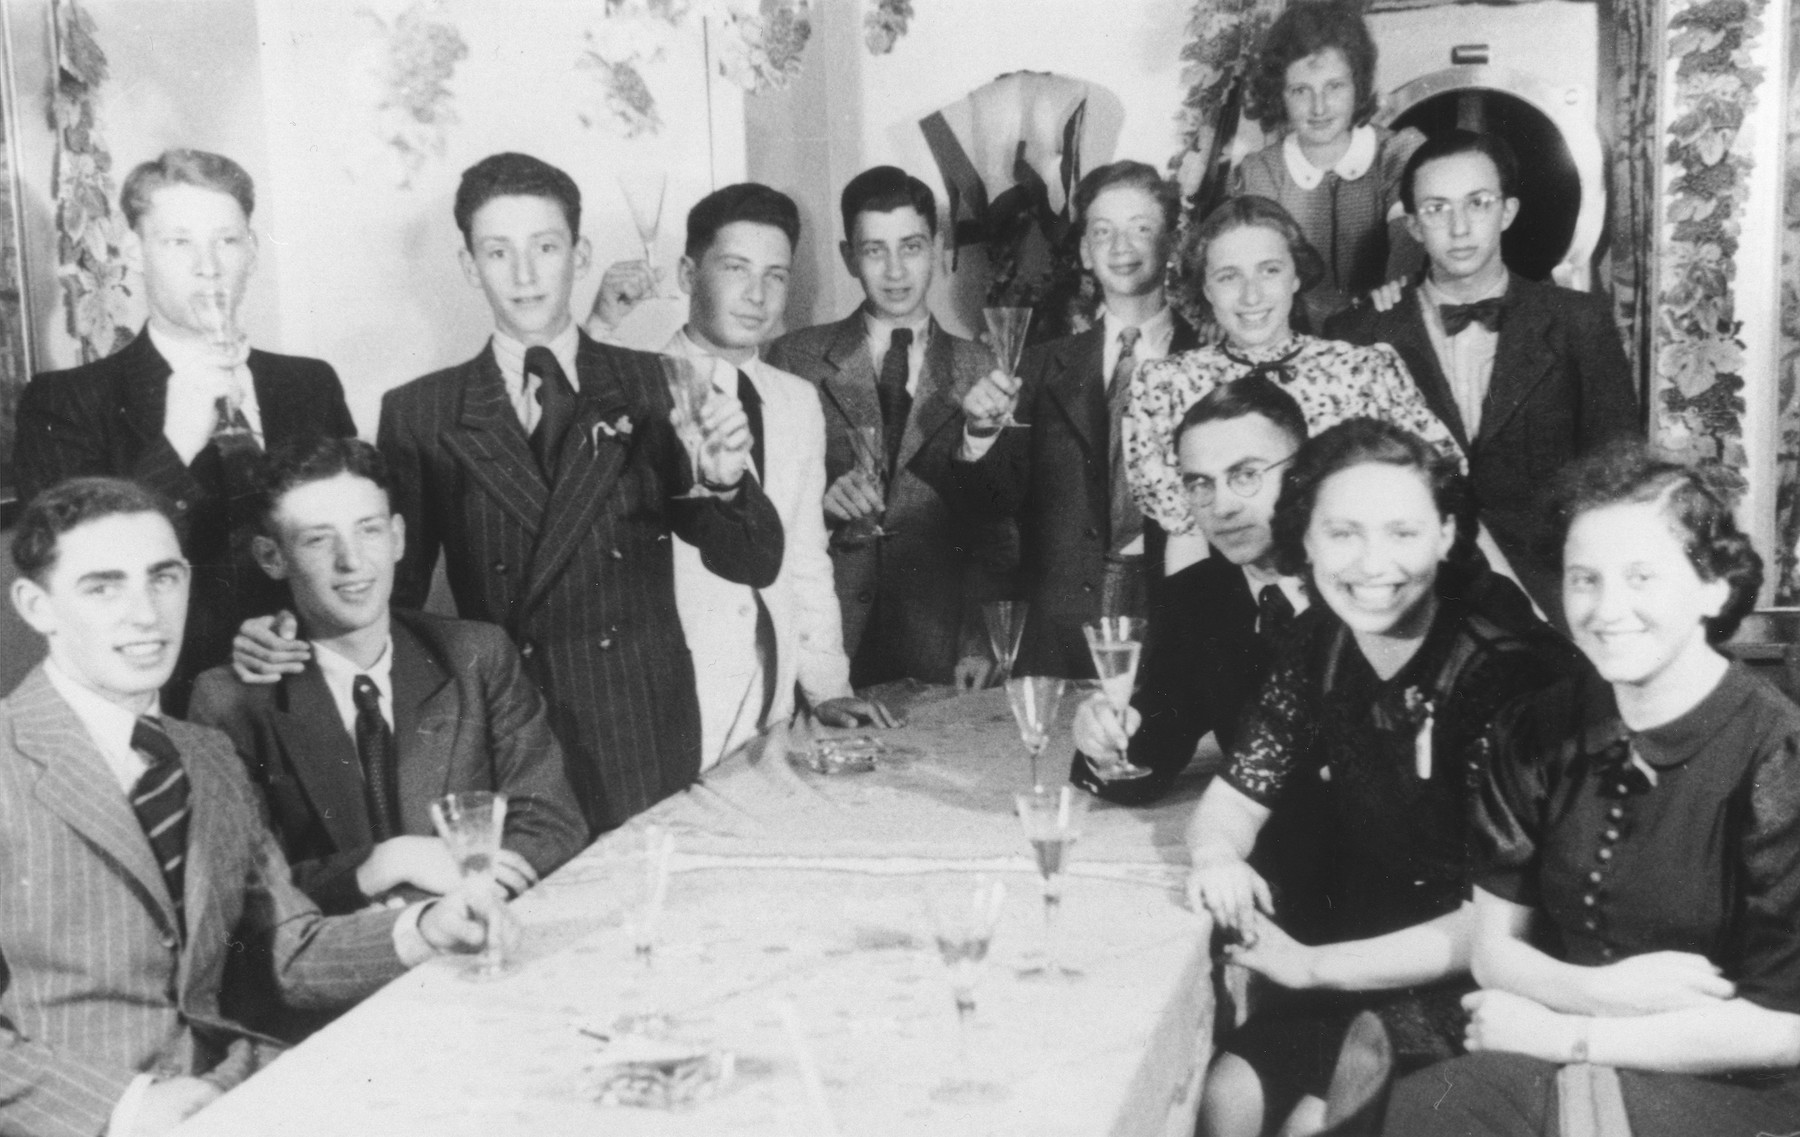 A group of young Jewish refugees raises their glasses in a toast on board the MS St. Louis.  [Probably a celebration held aboard the ship after destinations were found for all the passengers]  Among those pictured are Ilsa Hess (b. Aug. 21,1927 in Frankfurt) on the top of the photo and her sister Vera Hess (b. 1923) on the far right.